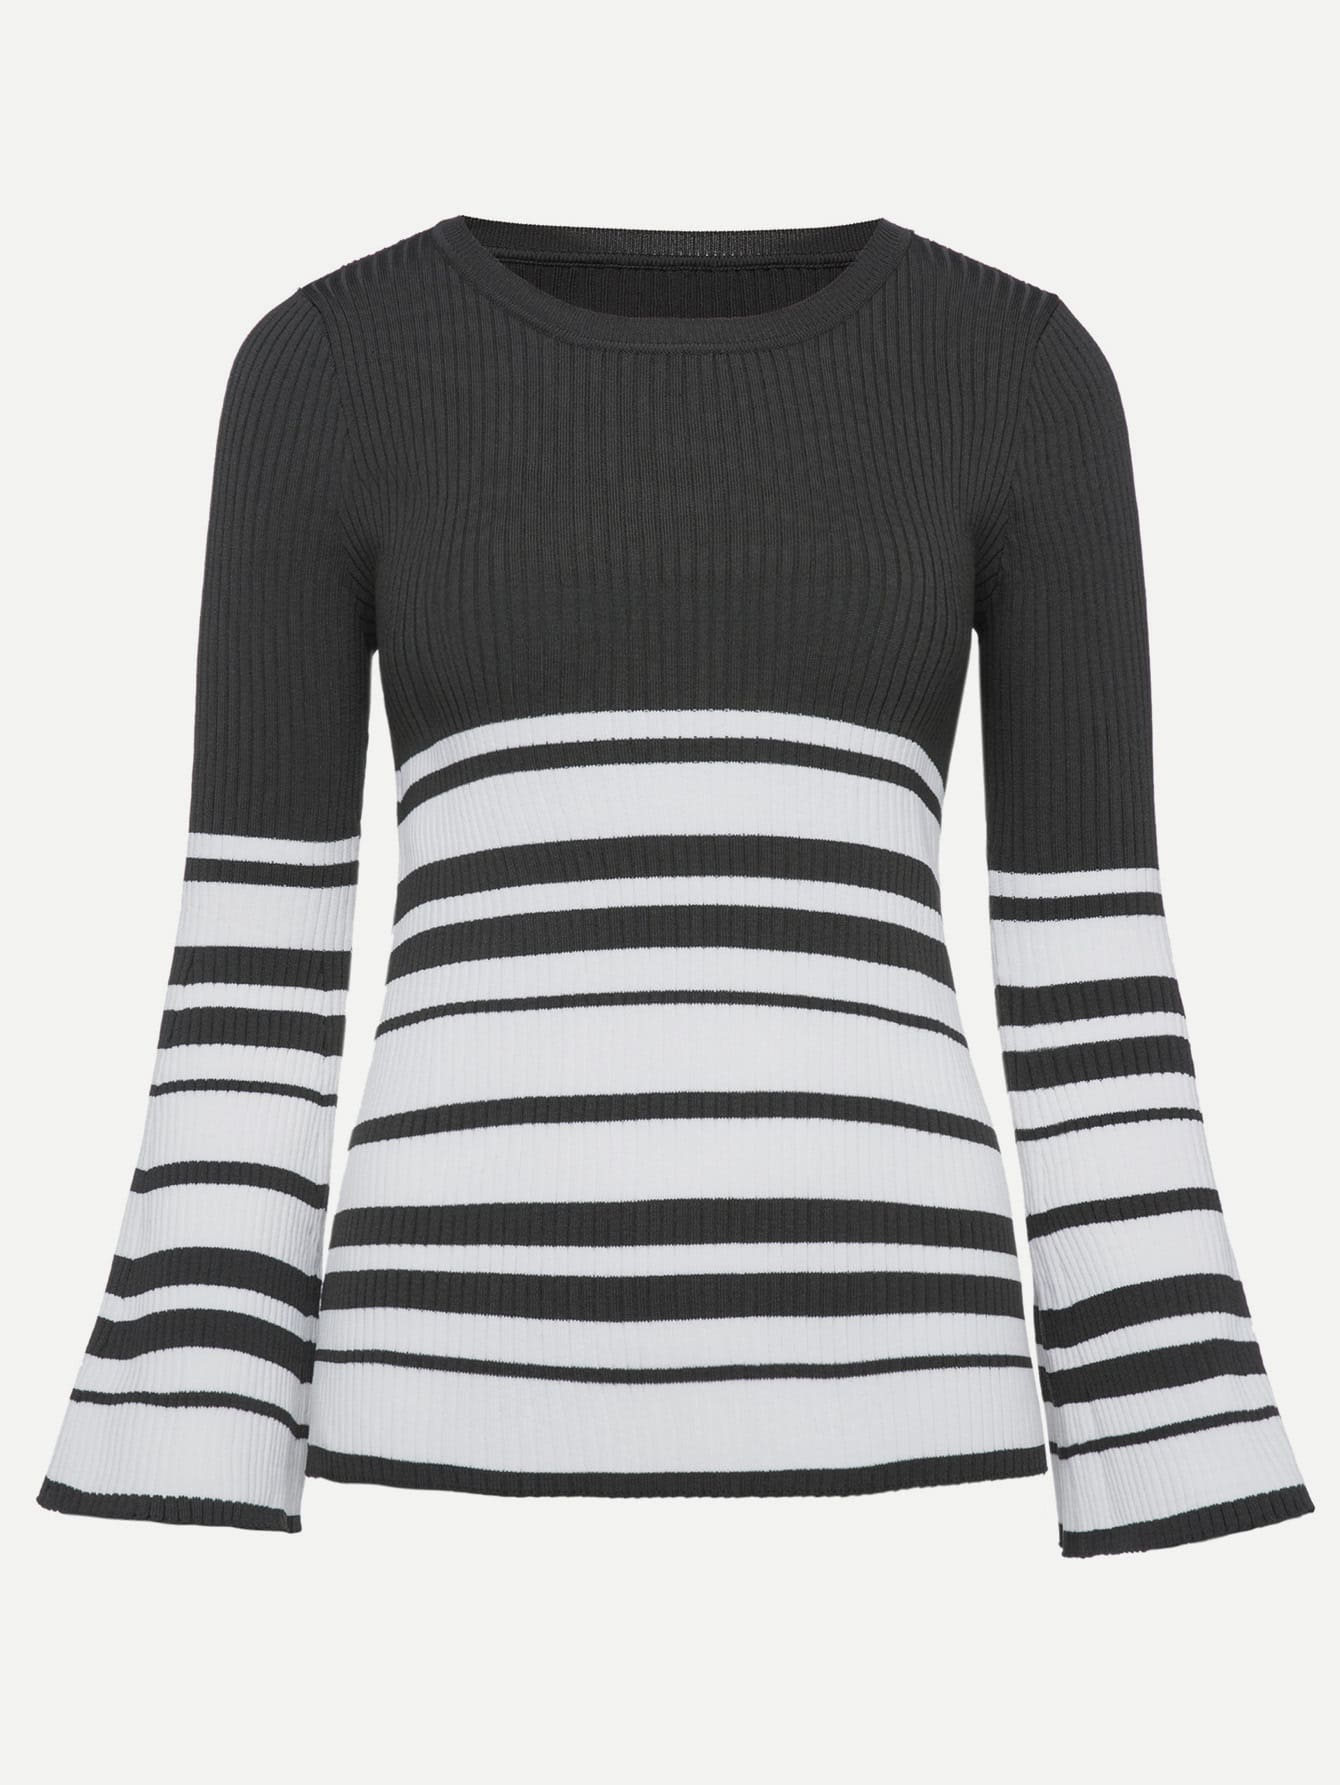 Contrast Striped Ribbed Sweater sweater171013373